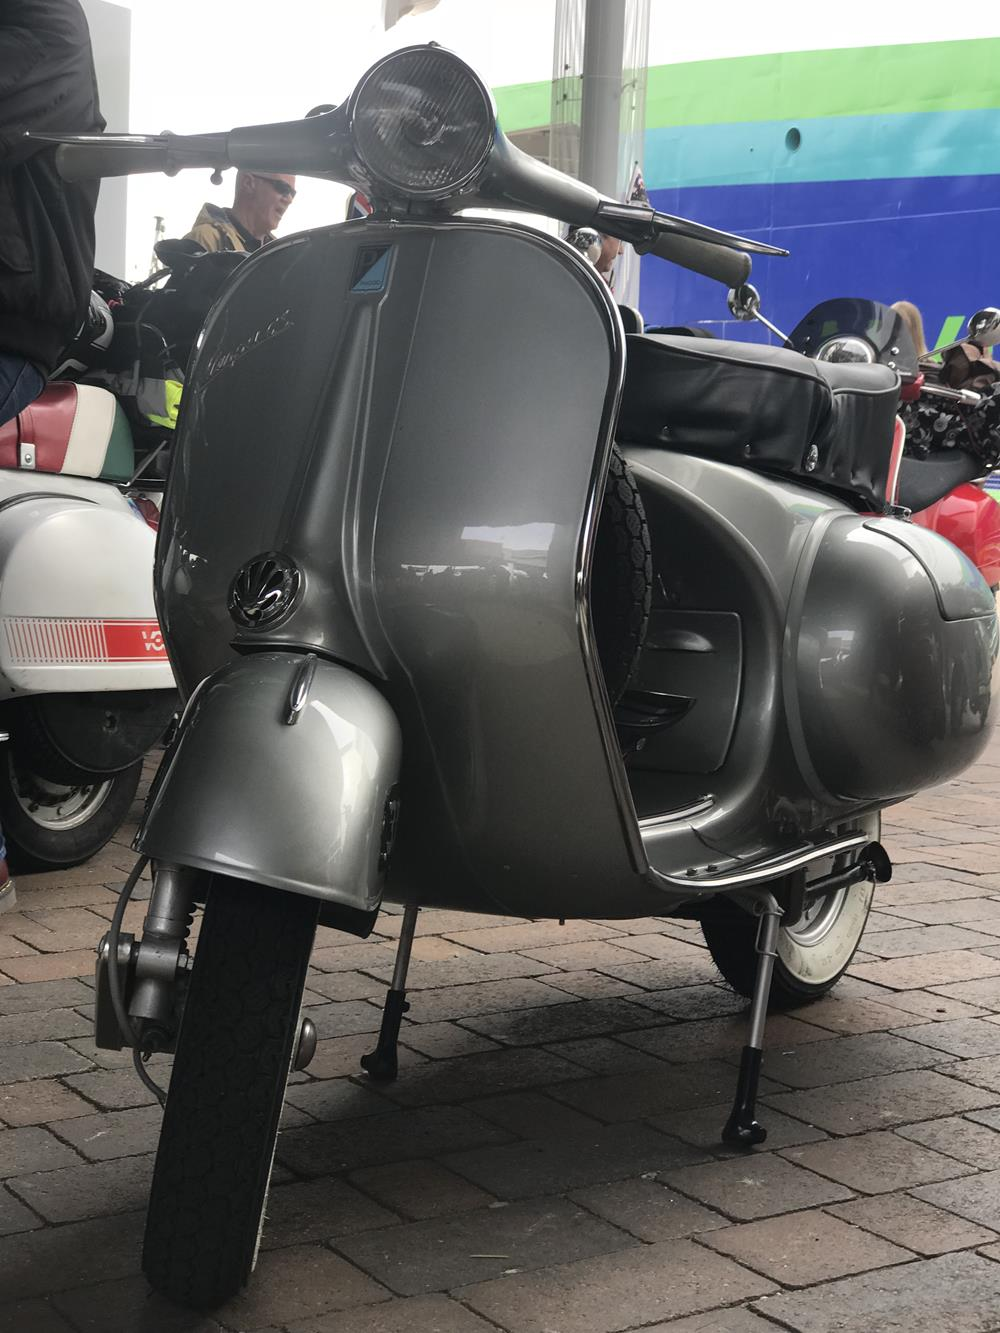 Silver Vespa GS scooter